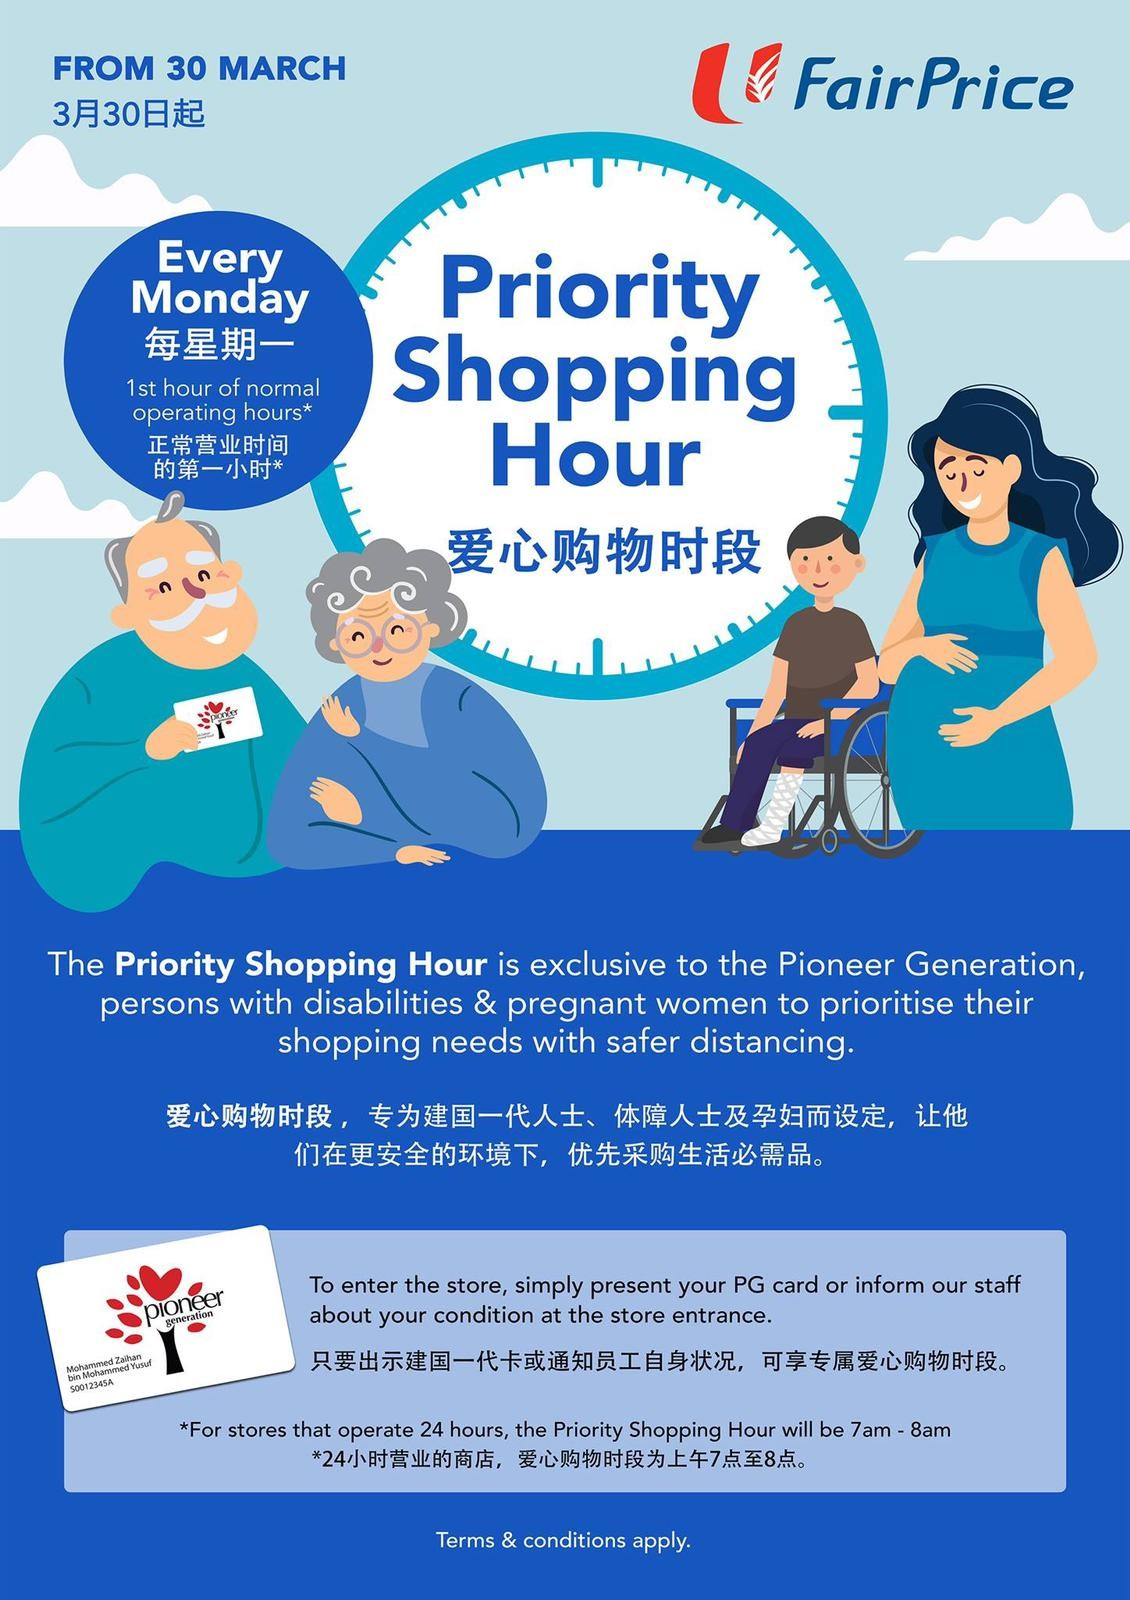 EDM of NTUC Priority Shopping Hour